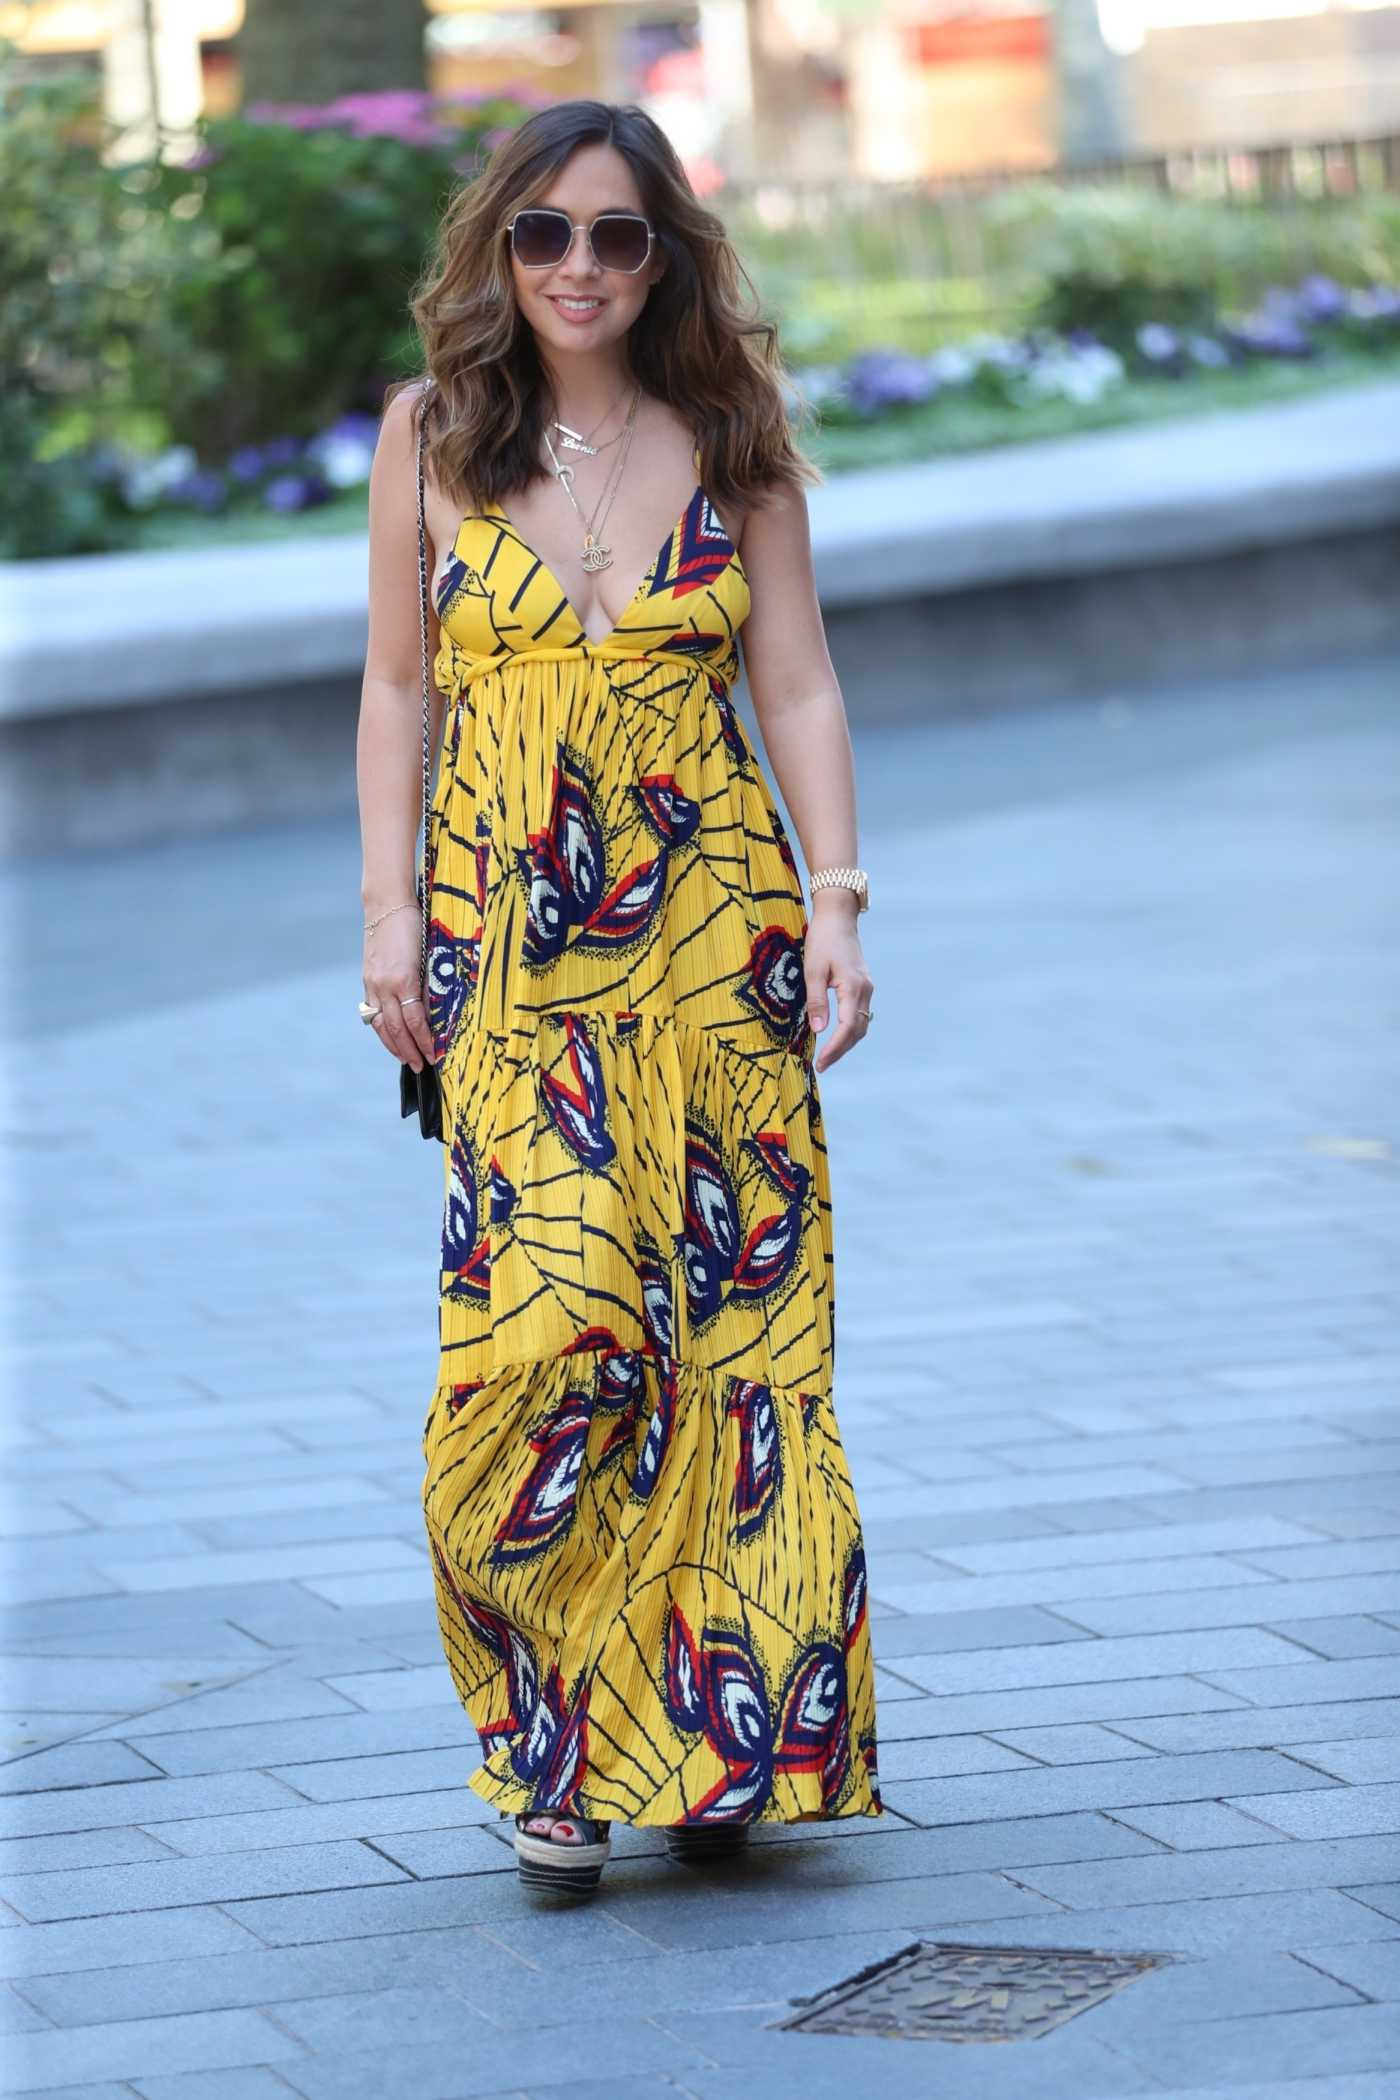 Myleene Klass in a Yellow Maxi Dress Arrives at the Smooth Radio in London 06/25/2020